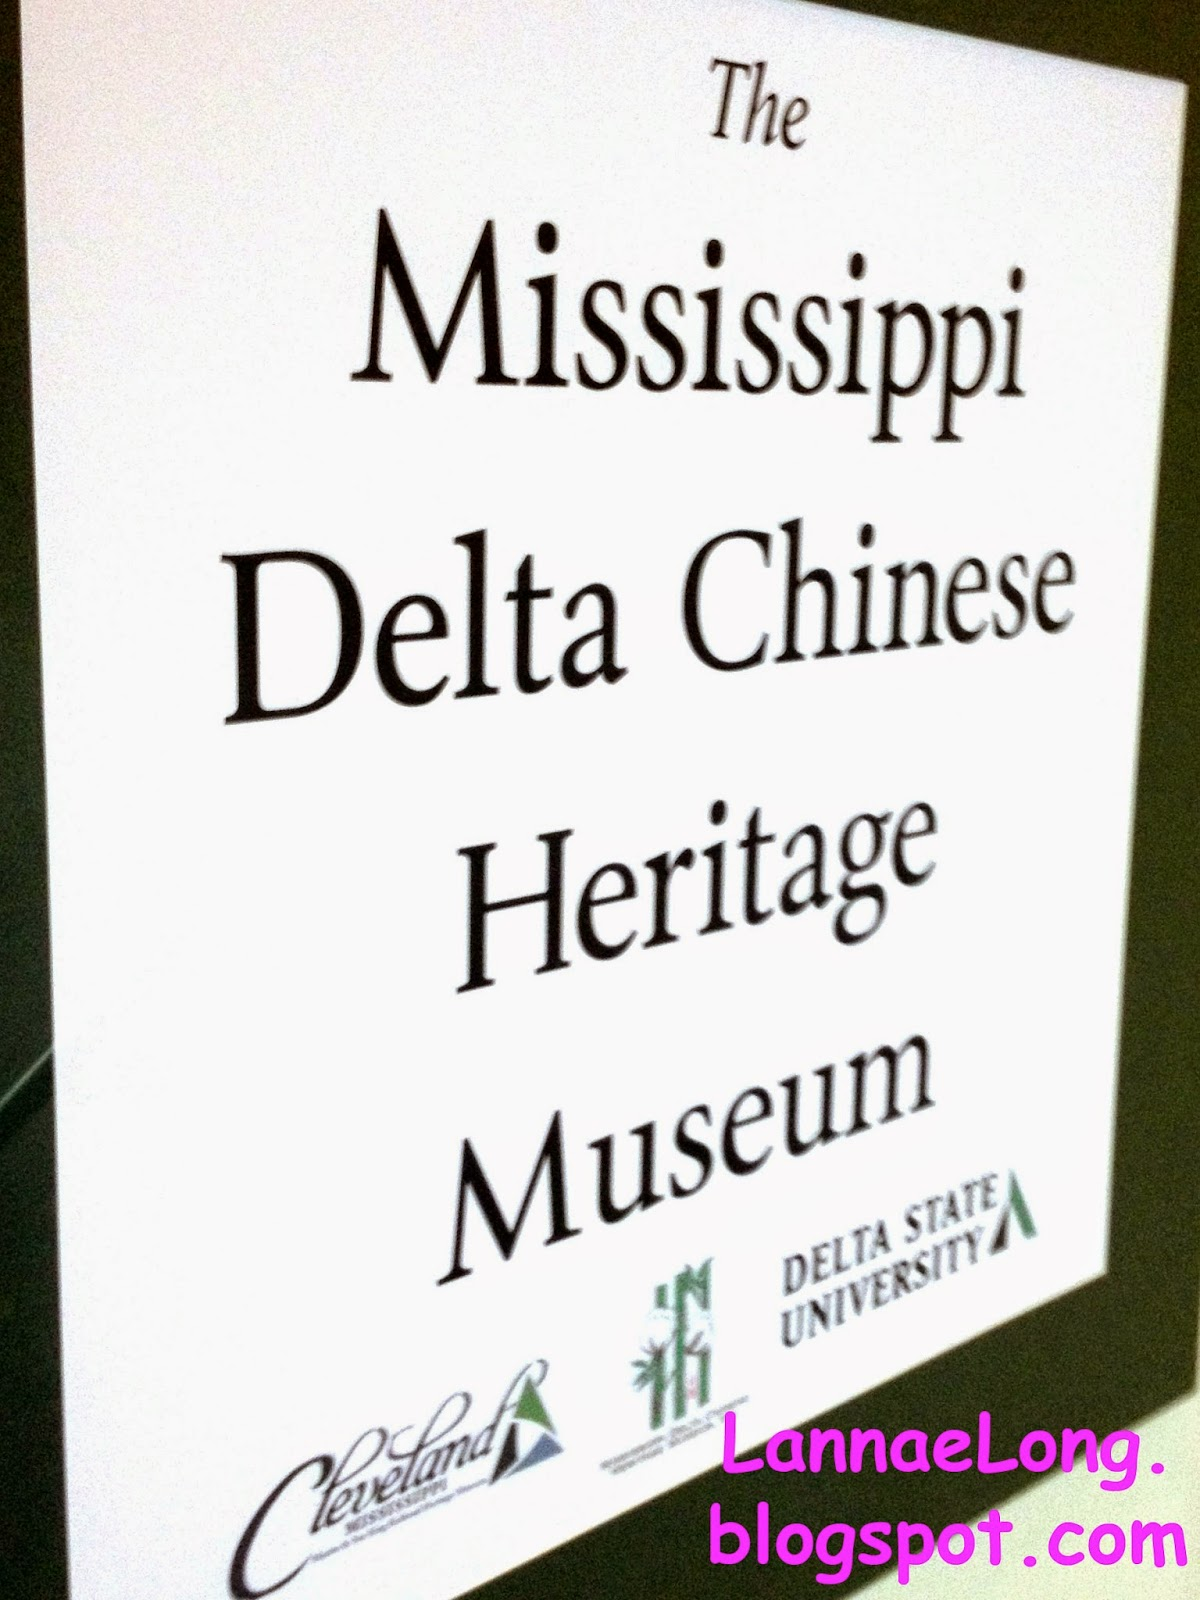 Lannaes food and travel i am southern i am also of chinese ethnicity on october 24 2014 the mississippi delta chinese heritage museum opened its doors to the public biocorpaavc